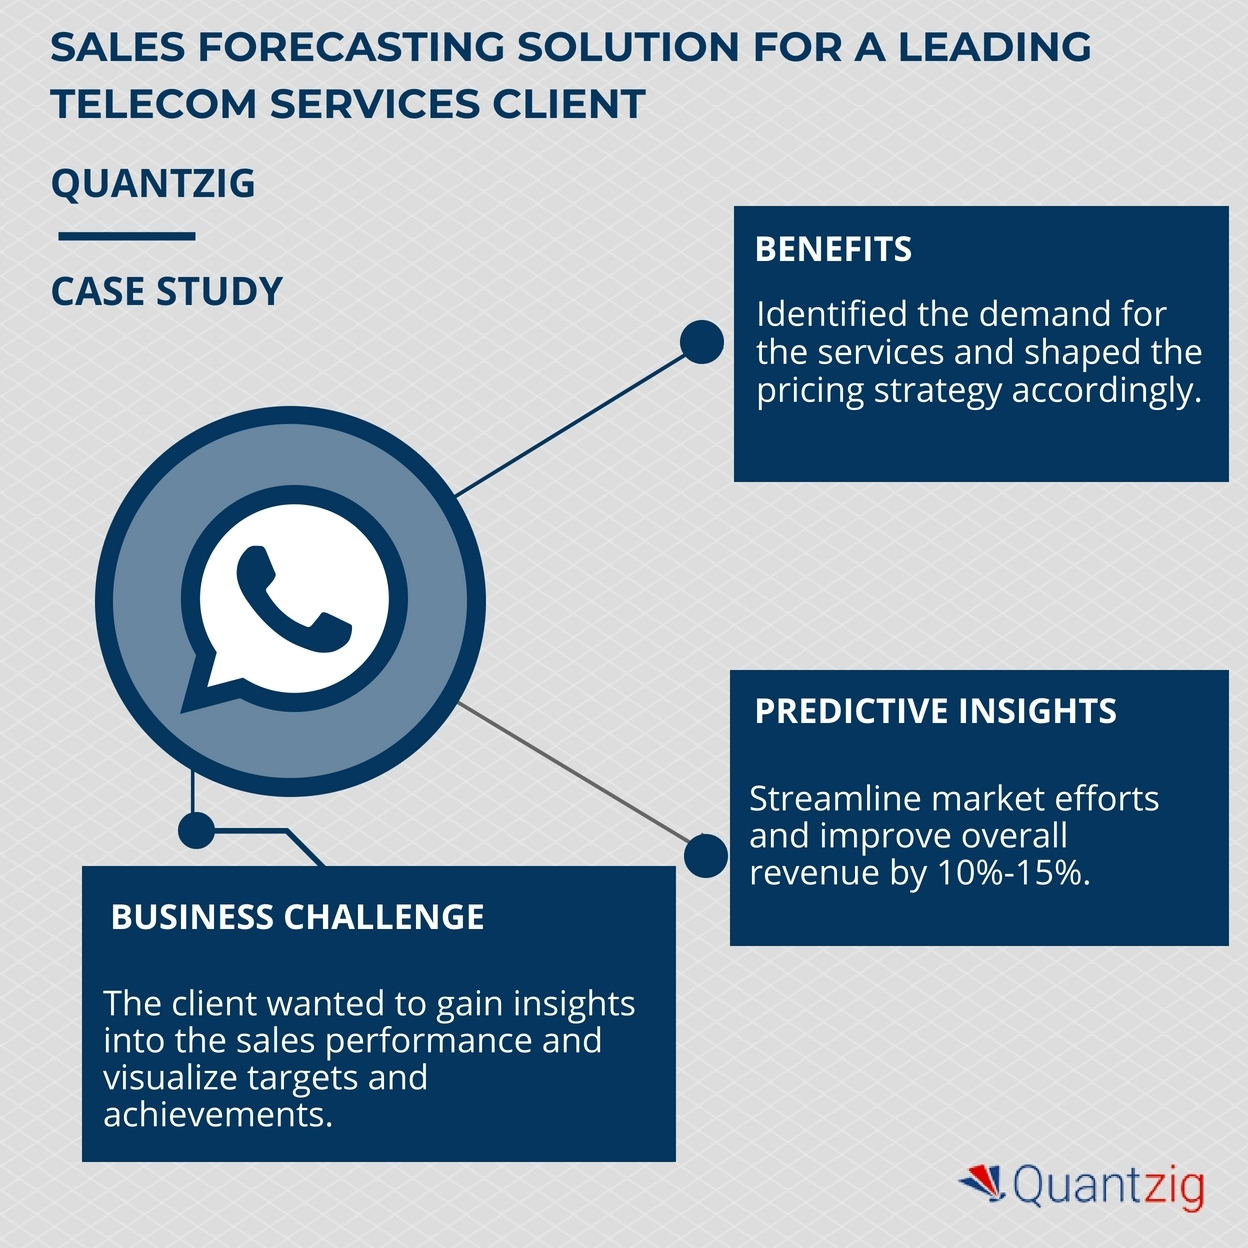 Sales Forecasting Solution for a Telecom Services Client Helped ...